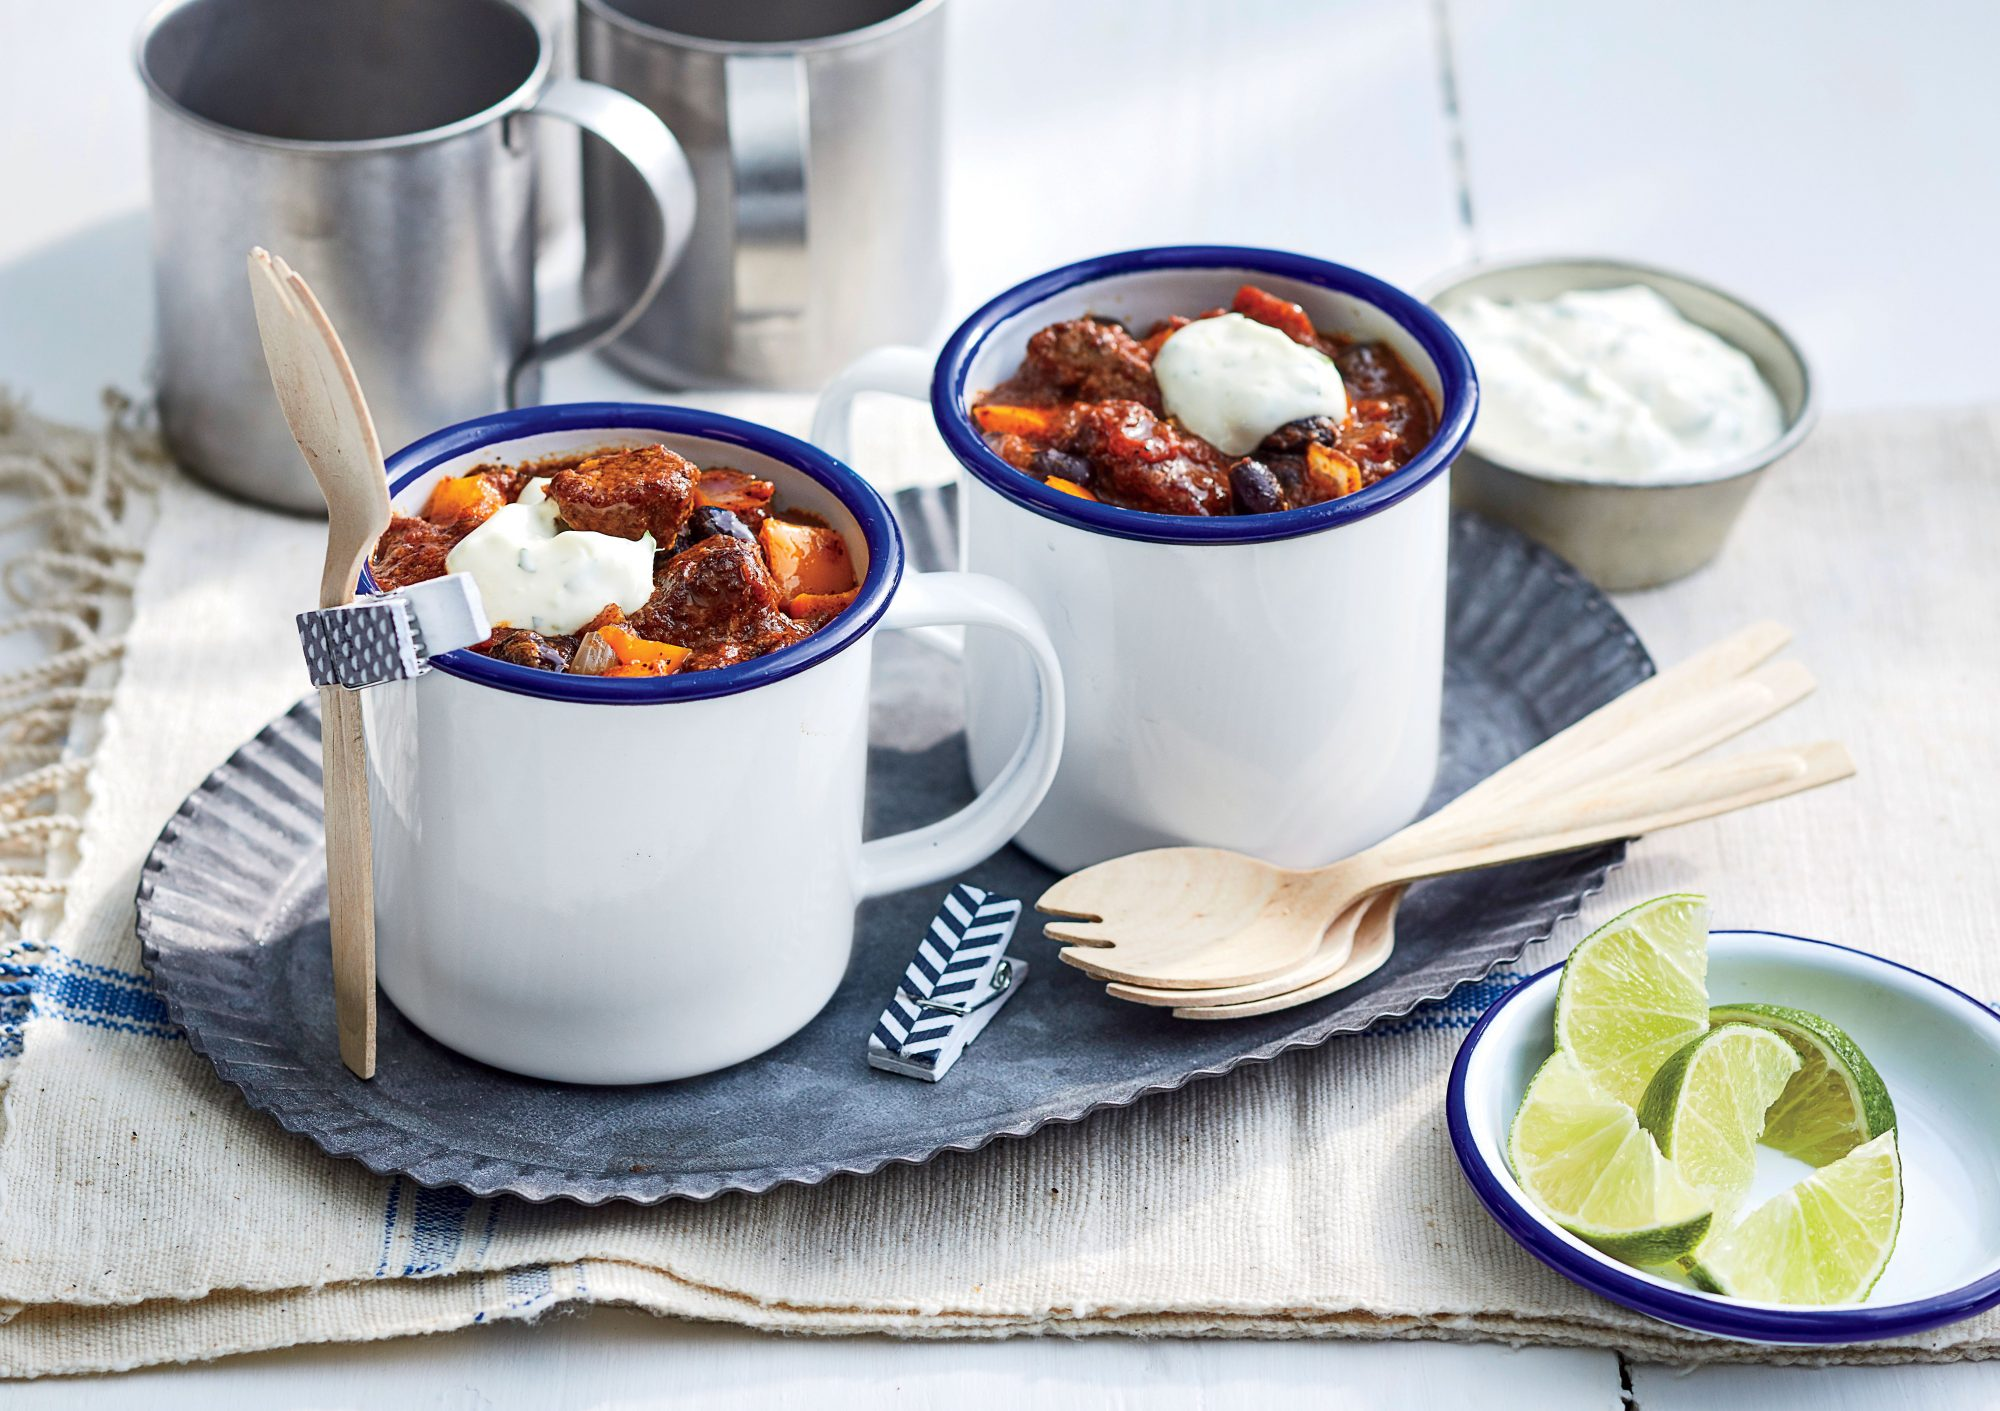 Brisket-and-Black Bean Chili with Cilantro-Lime Crema Recipe